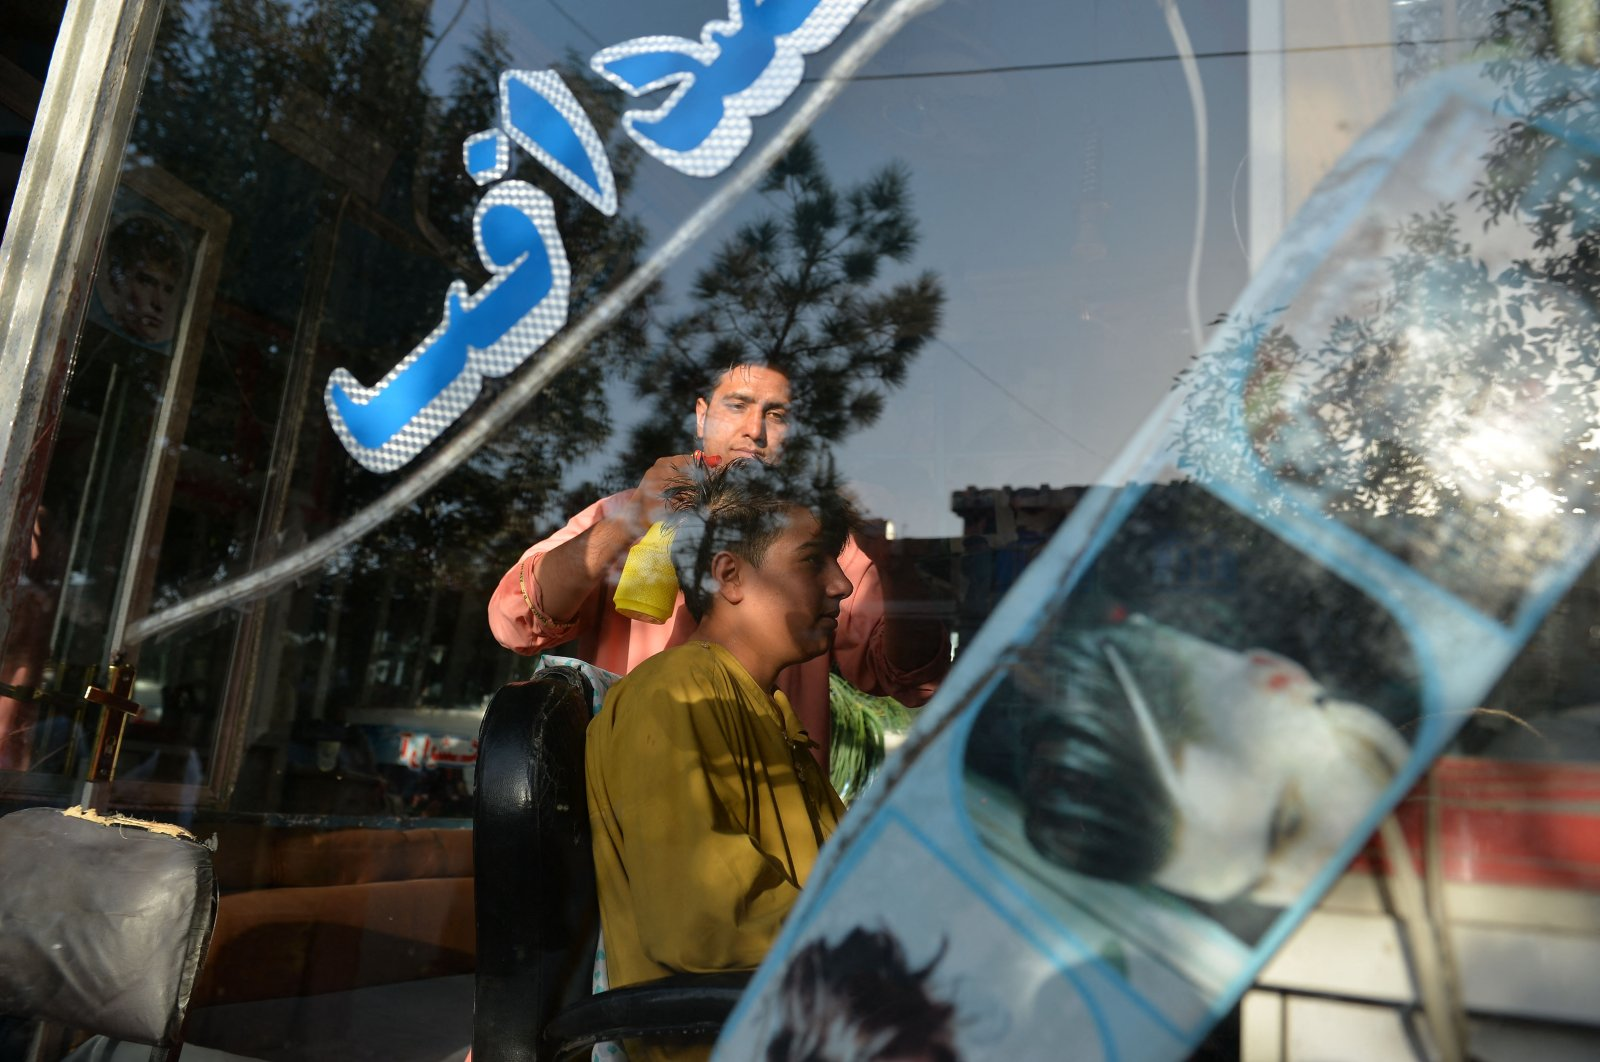 Nader Shah (L) attends a customer at his barbershop in Herat, Sept. 19, 2021. (AFP Photo)